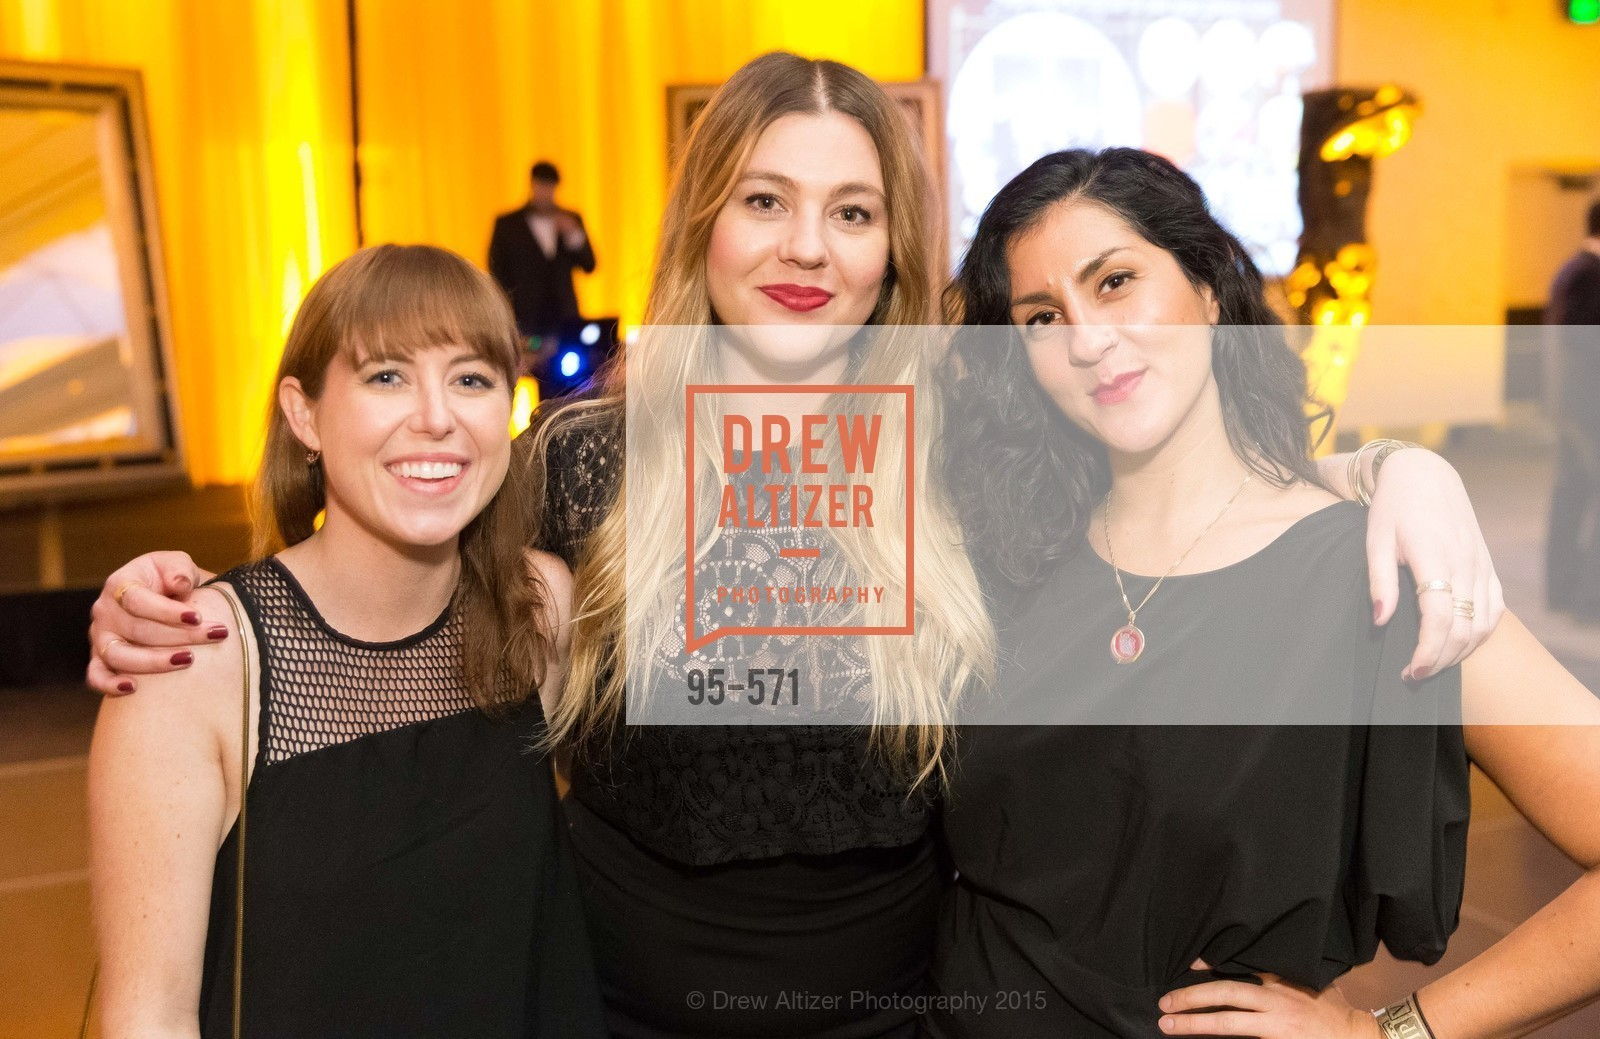 Sarah Schoetz, Amelia Cady, Amelia Kardooni, The 10th Annual San Francisco Social, W Hotel. 181 3rd St, November 21st, 2015,Drew Altizer, Drew Altizer Photography, full-service agency, private events, San Francisco photographer, photographer california